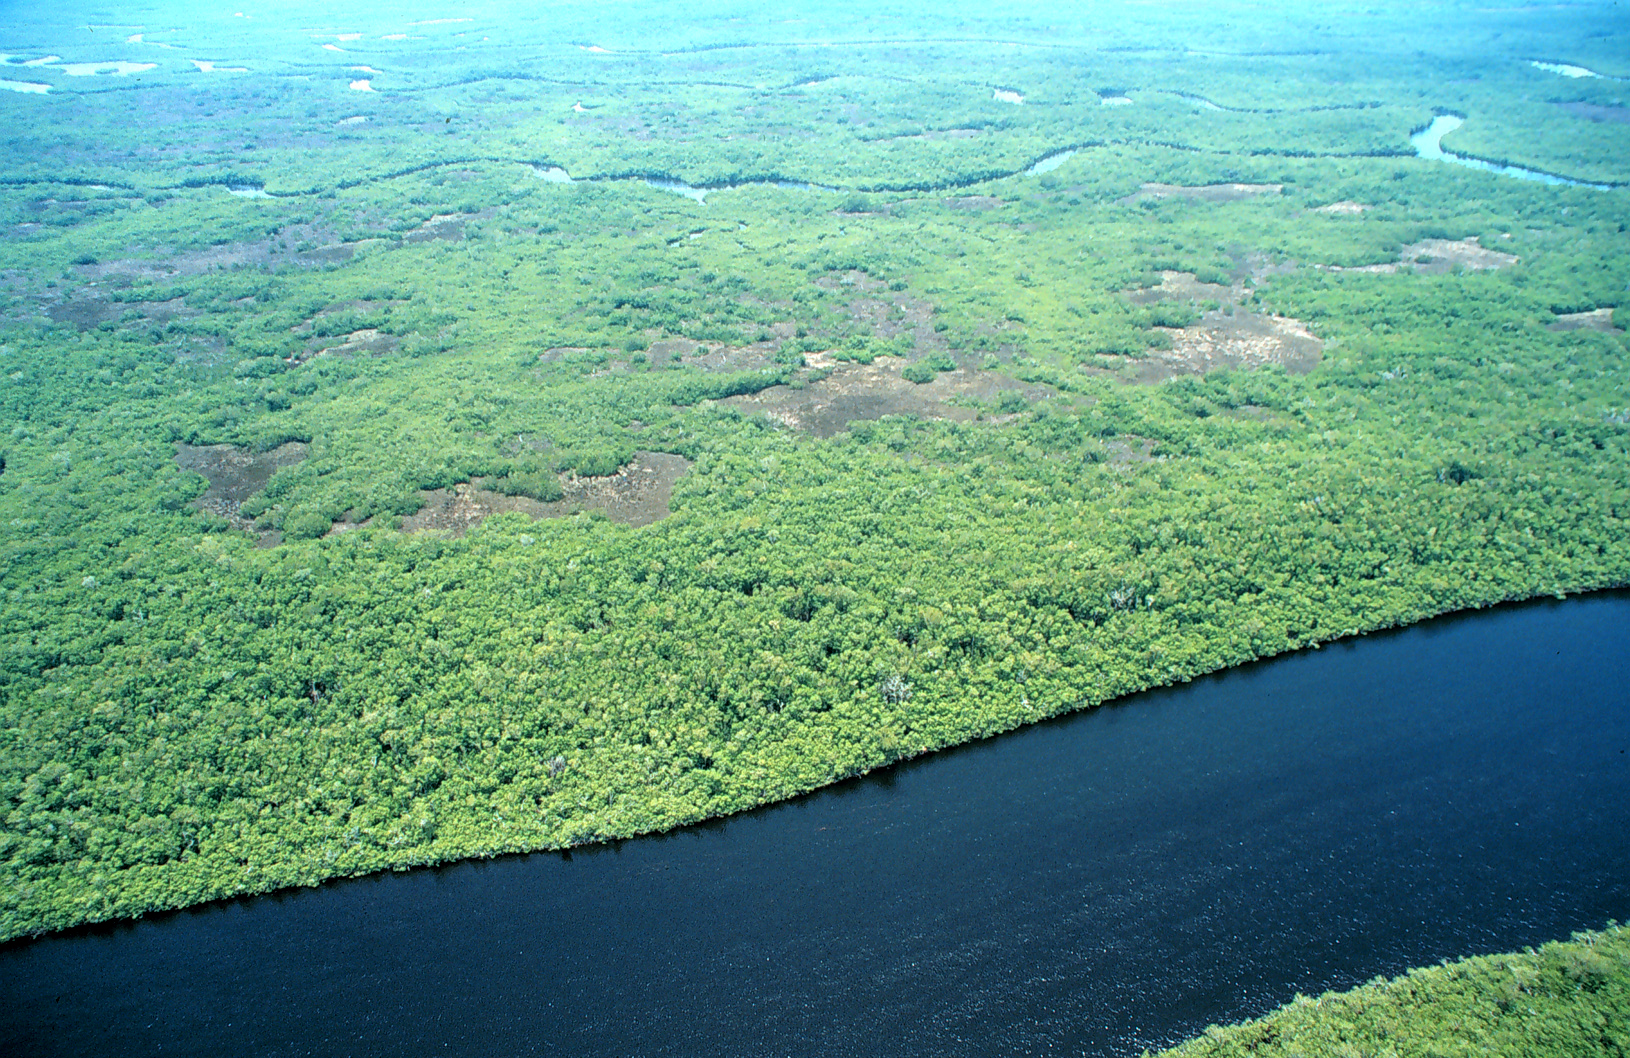 An aerial shot of the expansive wetland habitat that characterizes the Everglades